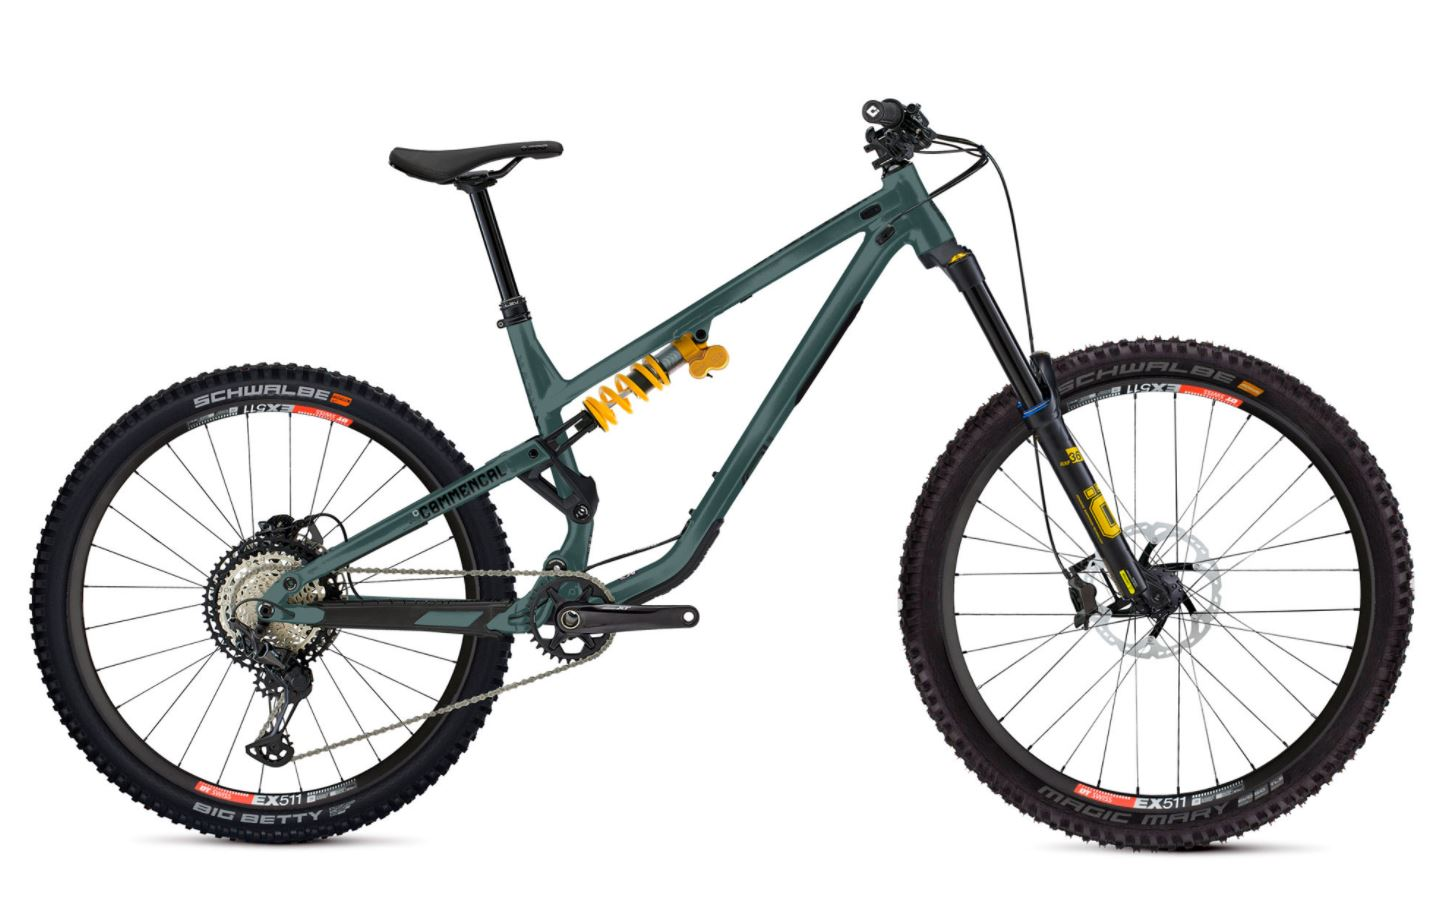 David Golay reviews the 2022 Commencal Meta SX for Blister